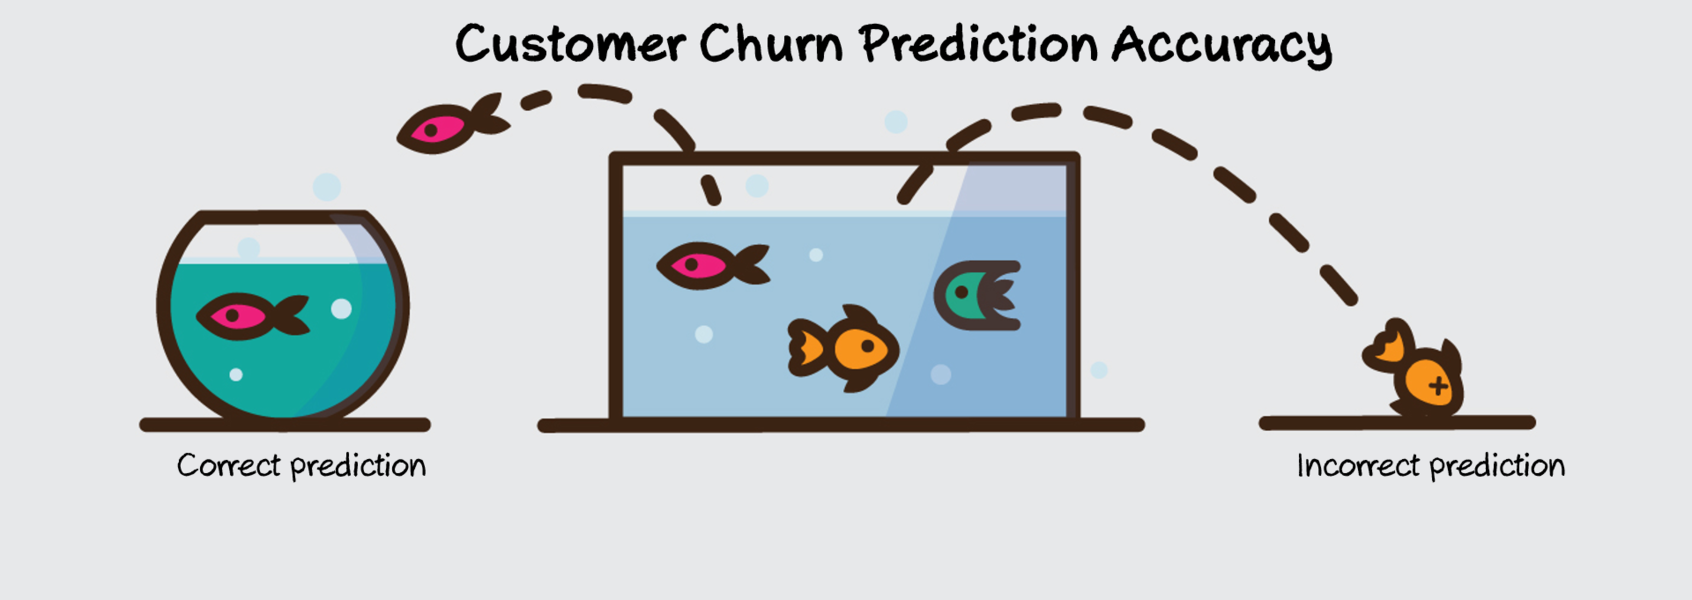 How Do You Measure If Your Customer Churn Predictive Model